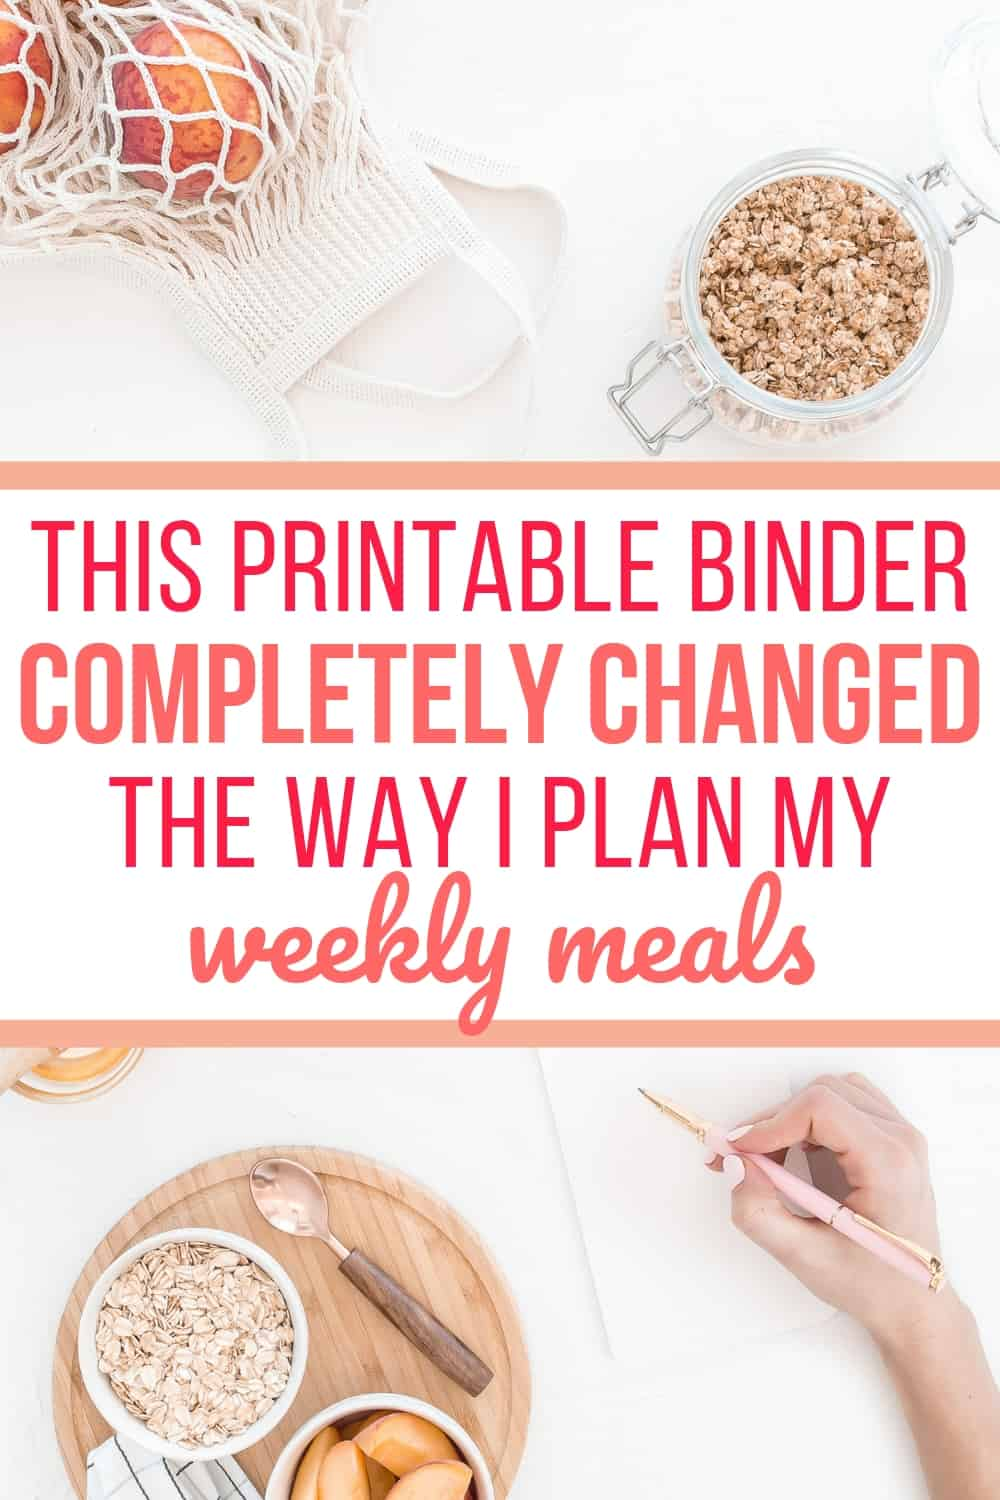 This printable binder changed how I plan meals